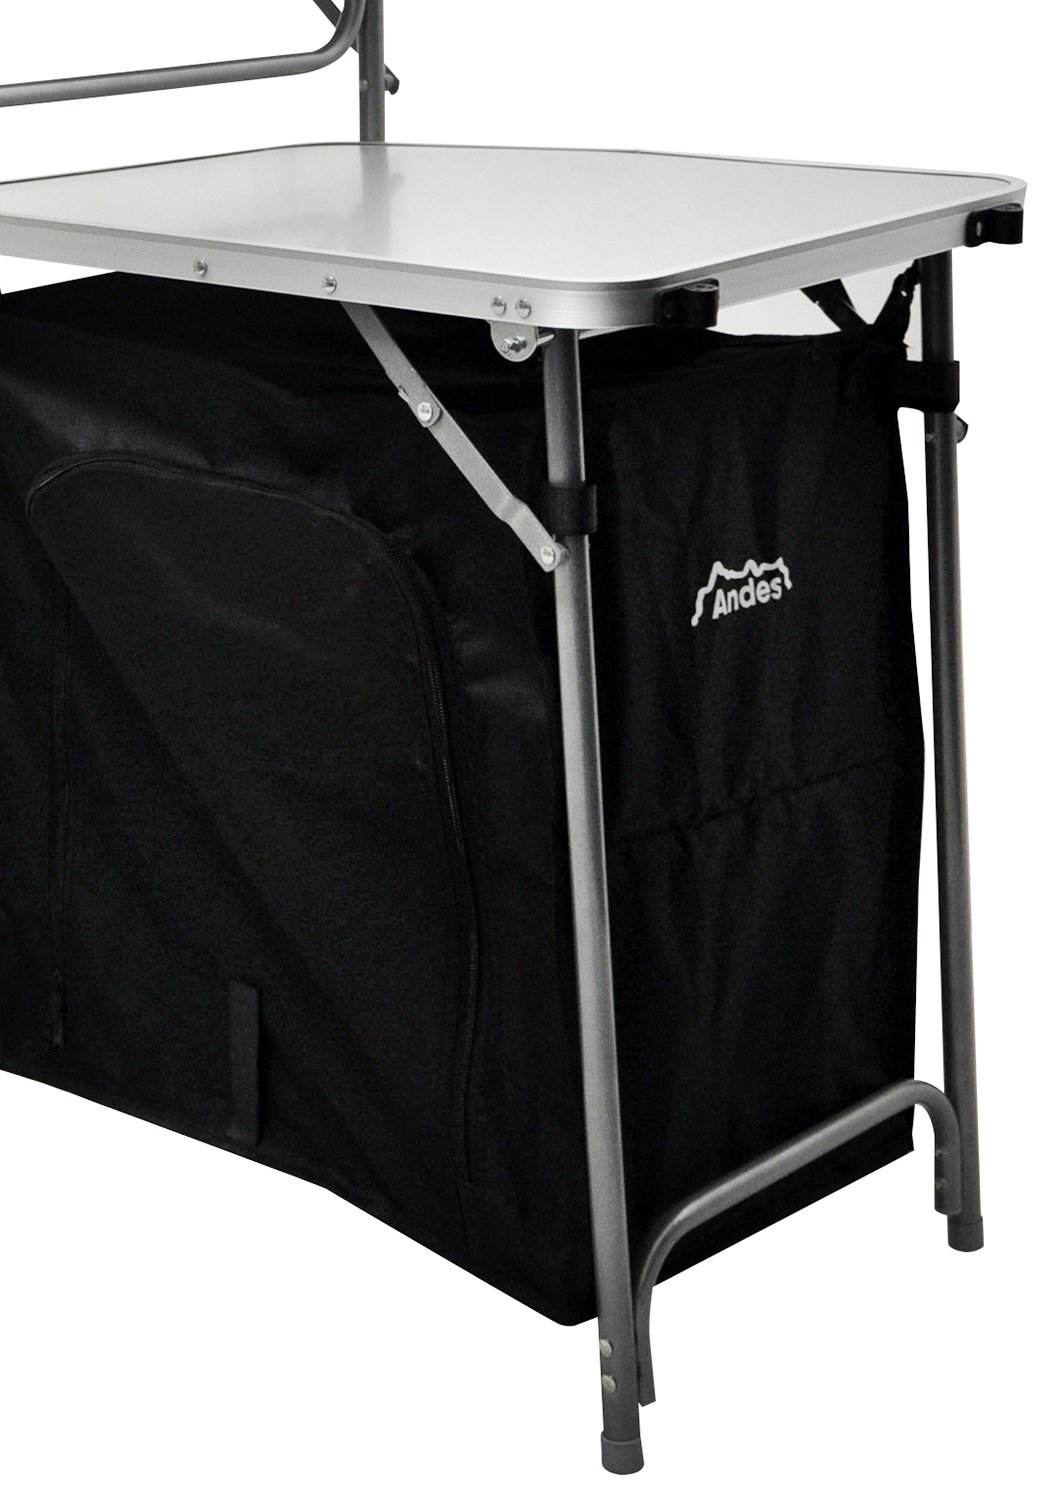 Andes Camping Field Kitchen Worktop Table Stand With Cupboard 2